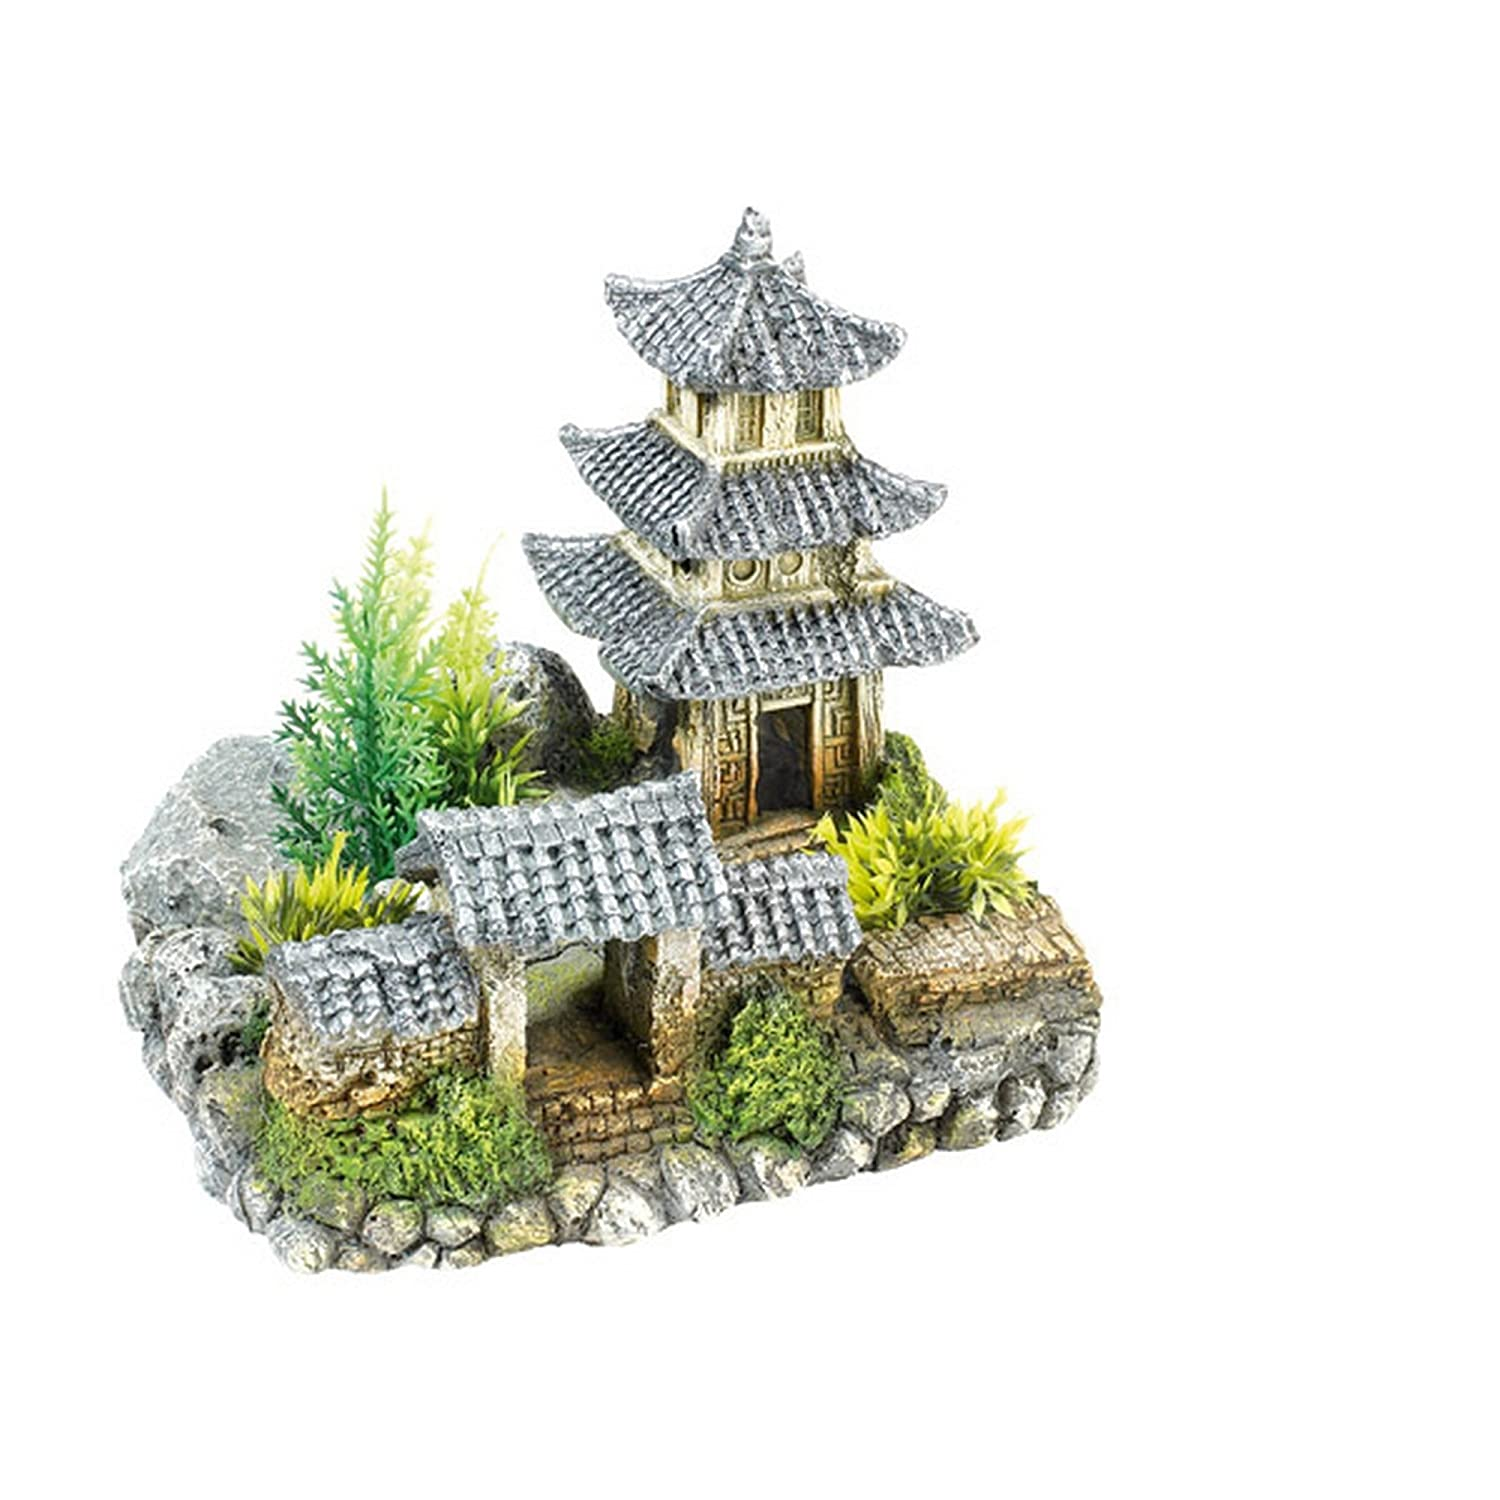 Fish aquarium ornaments - Asian Temple Plants Aquarium Ornament Oriental House Fish Cave Decoration